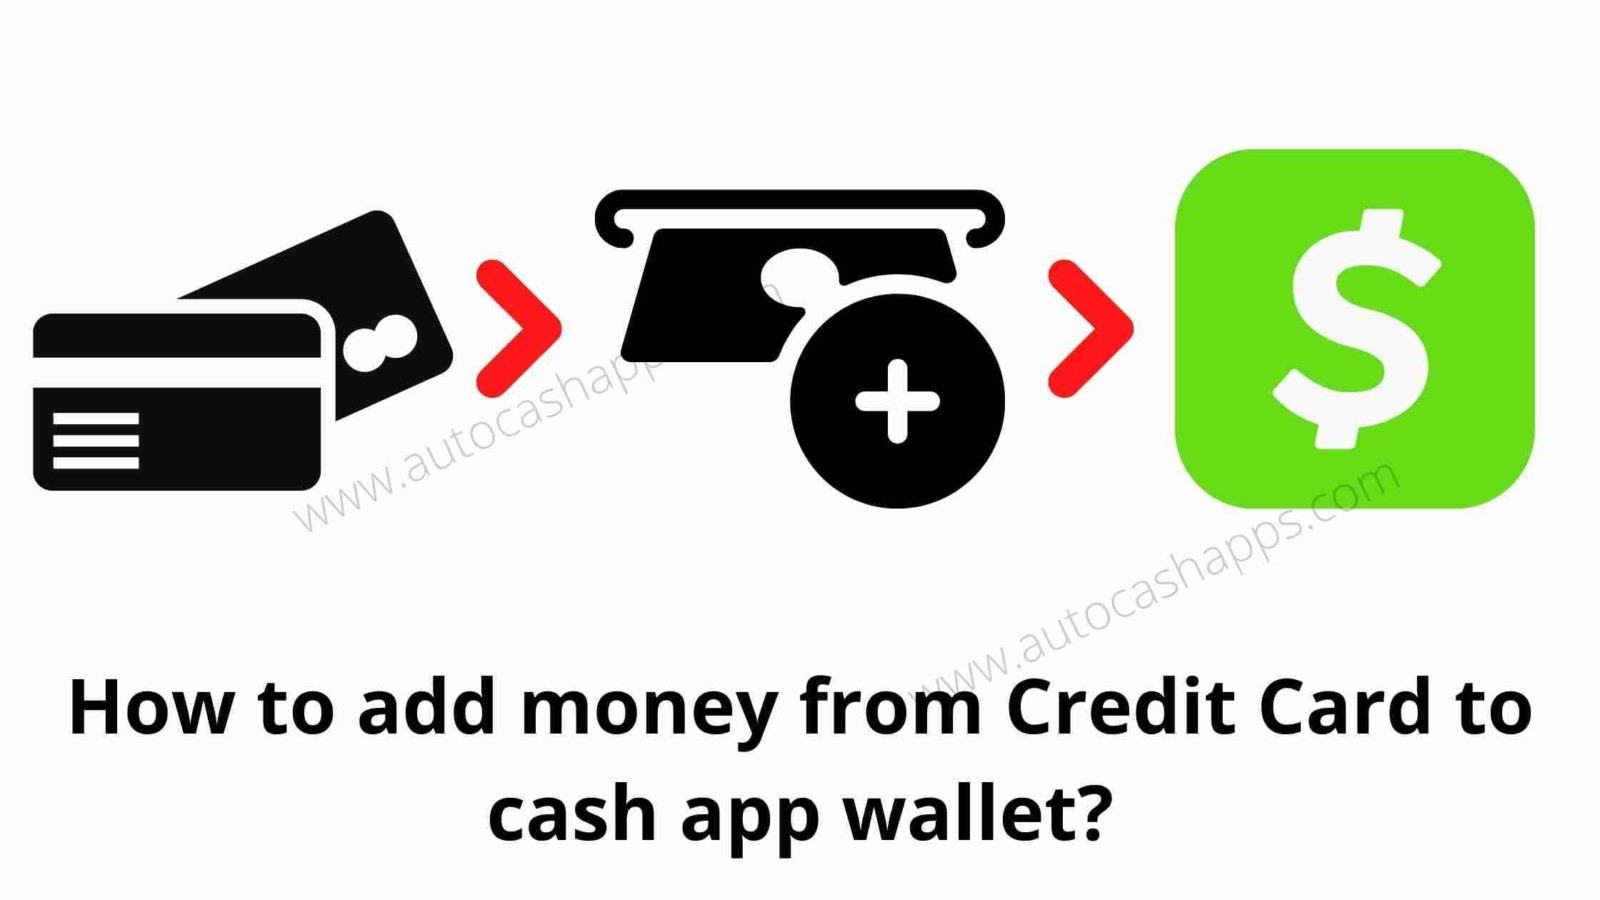 send money from credit card to Cash App wallet